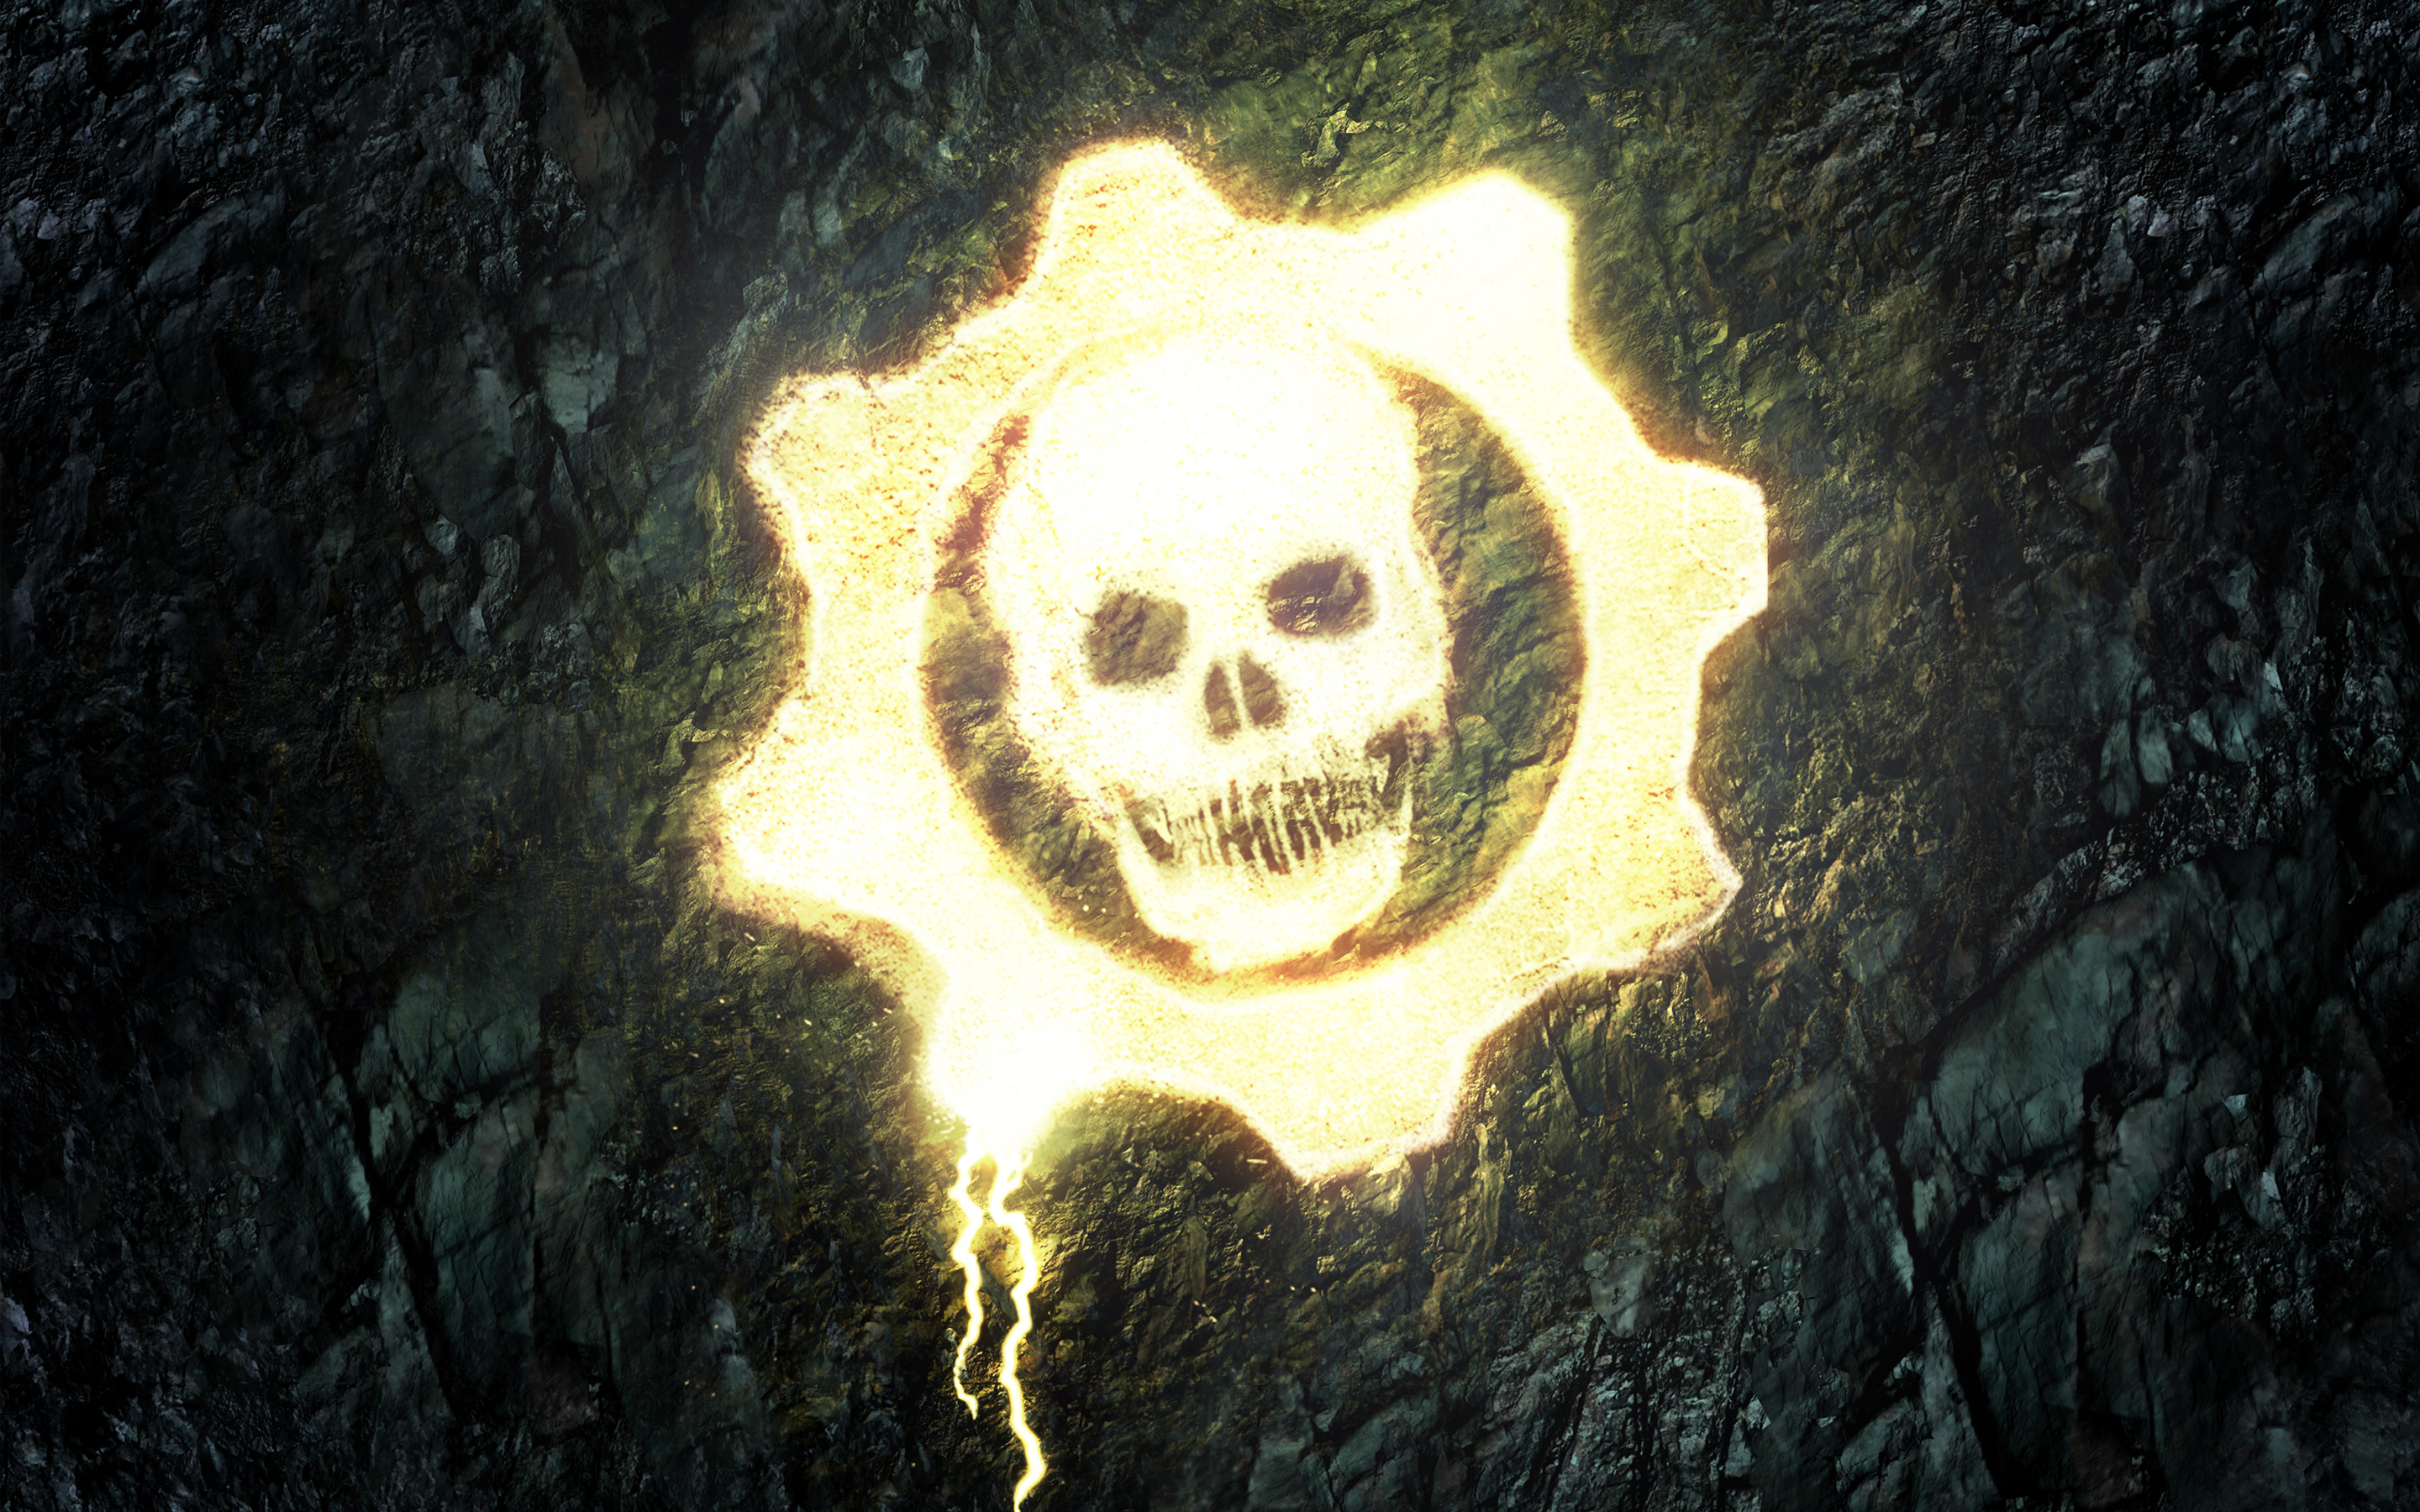 Gears of War Skull 211.29 Kb